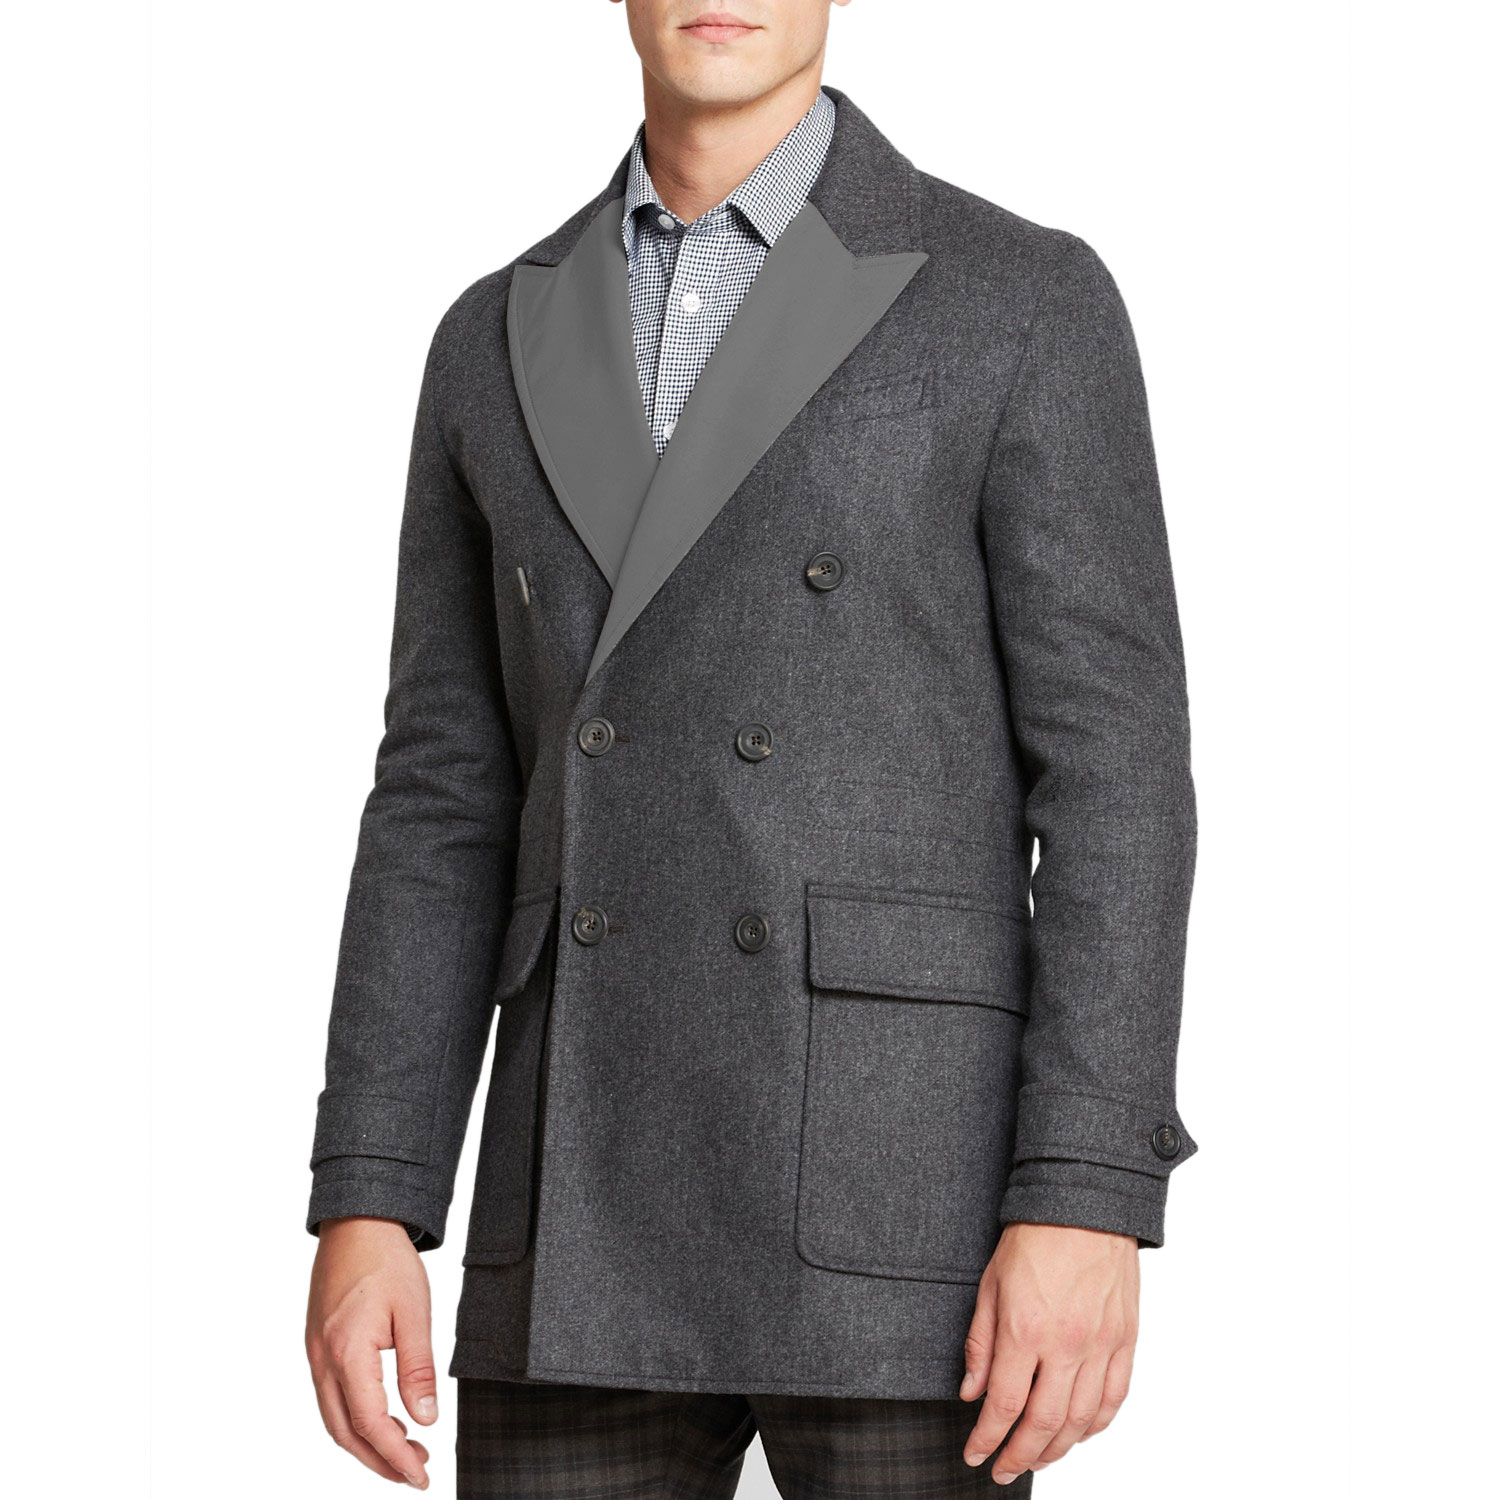 HARDY AMIES Men's Reversible Wool Peacoat Large L Charcoal Made In England by Mens Wool Coats